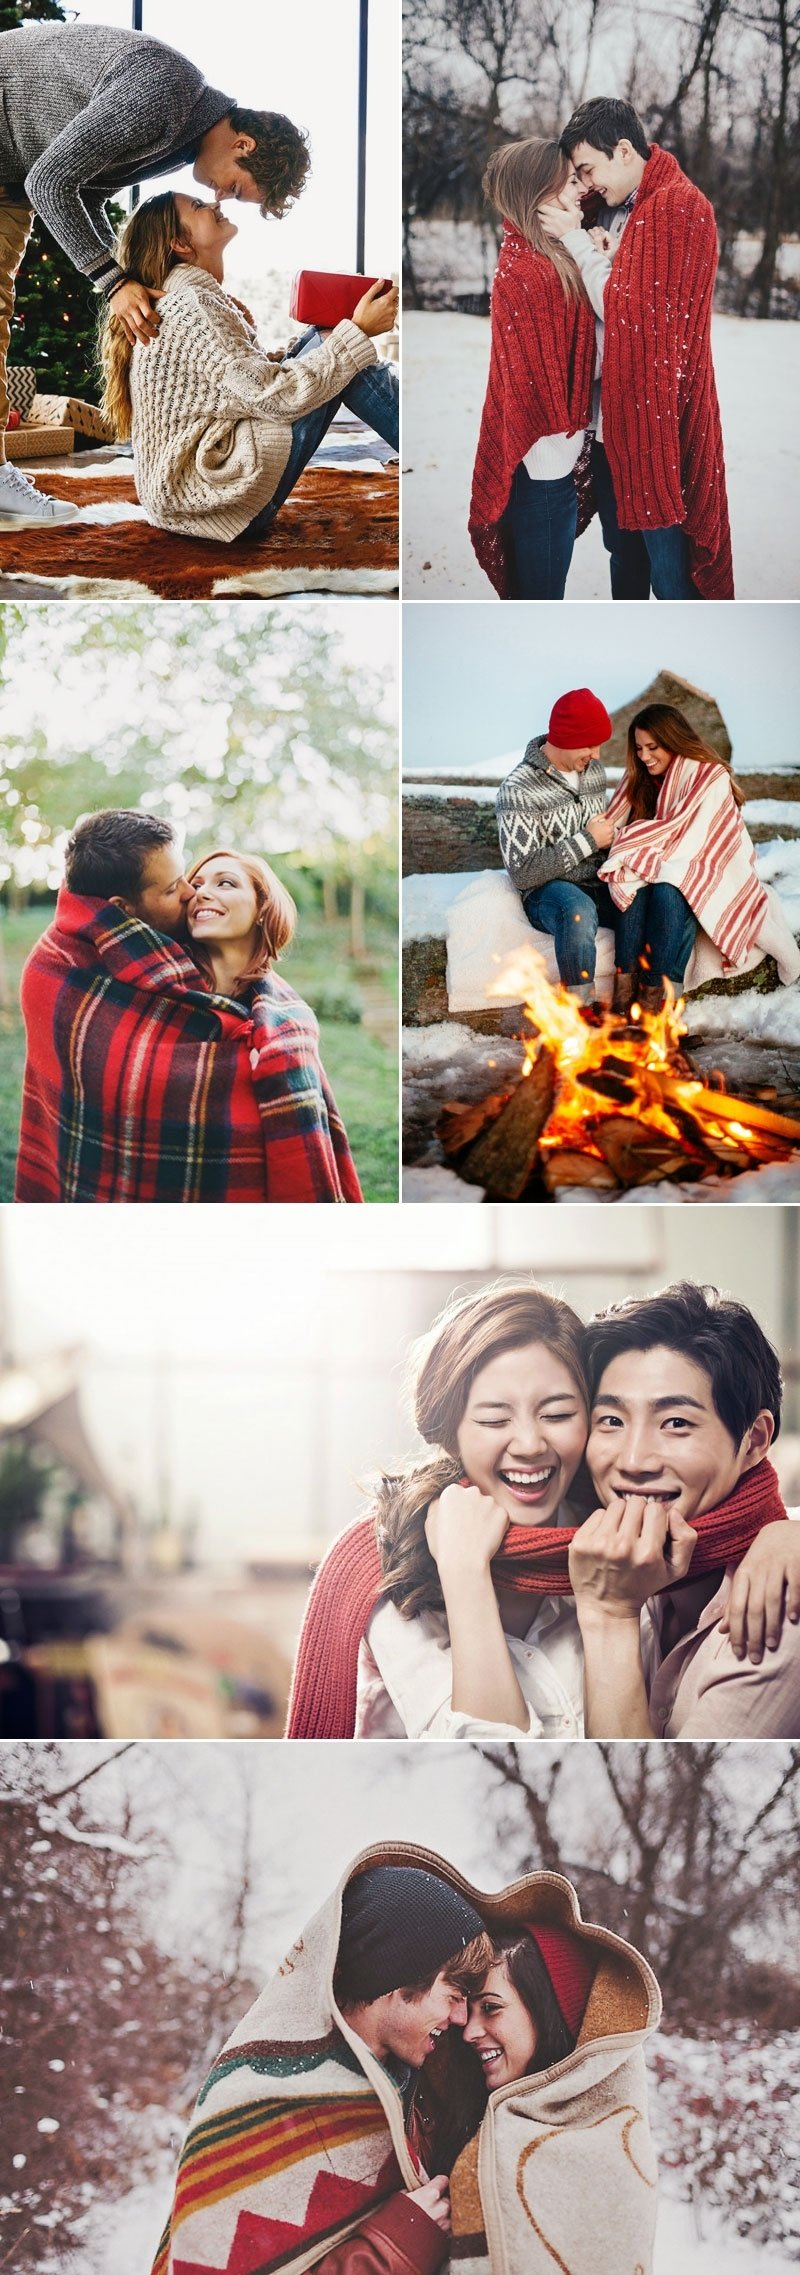 10 Fabulous Christmas Picture Ideas For Couples 20 cute christmas photo ideas for couples to show love praise wedding 3 2020